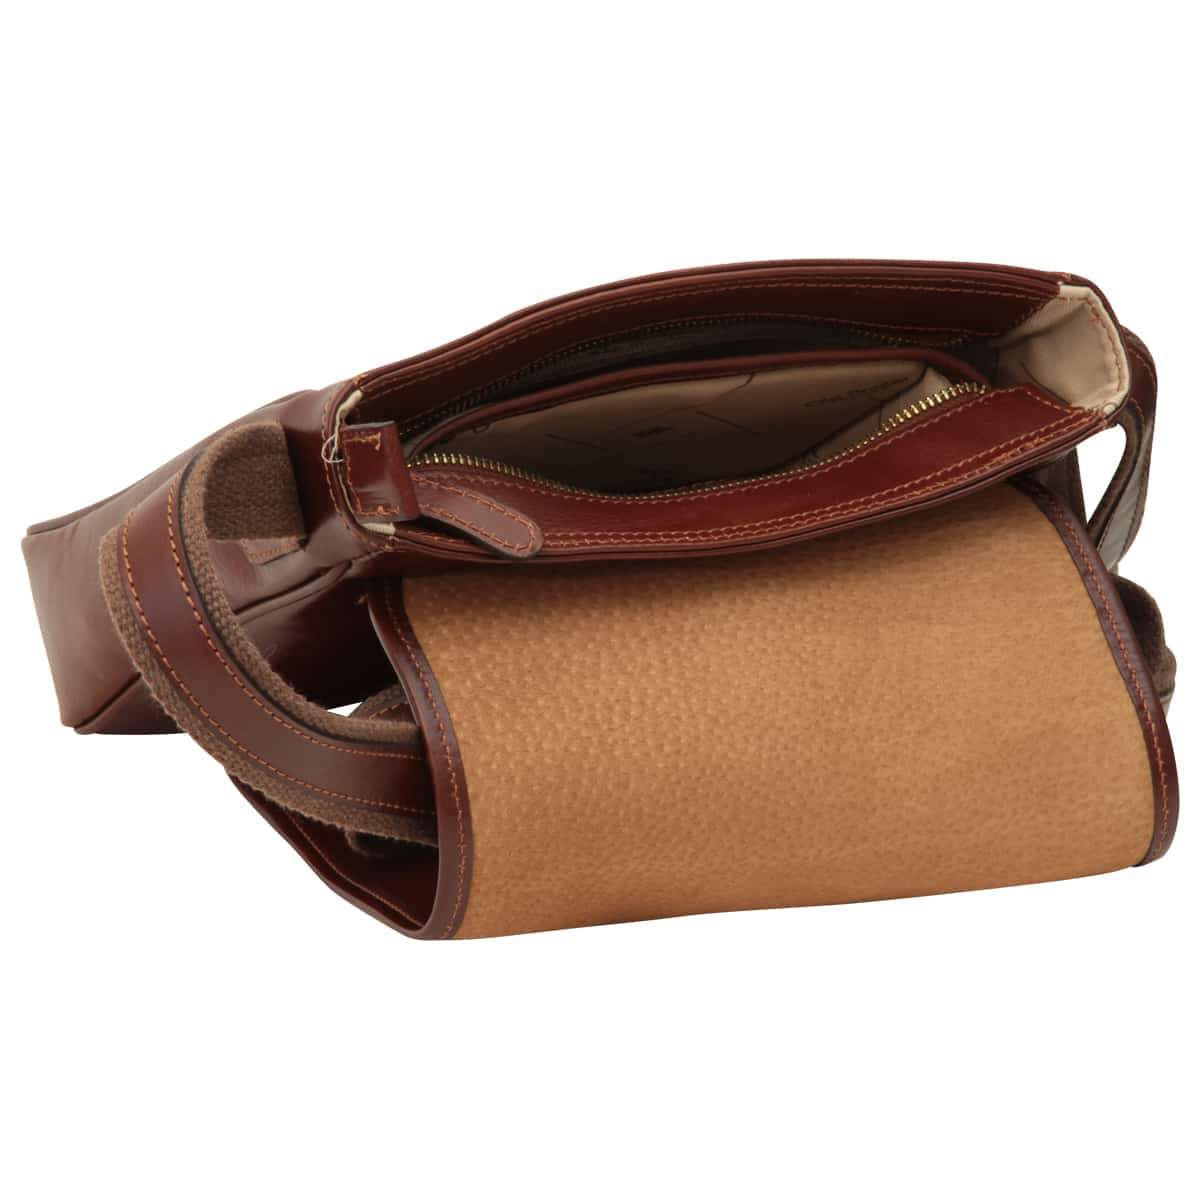 Small leather bag with magnetic closure - Brown  | 406689MA UK | Old Angler Firenze